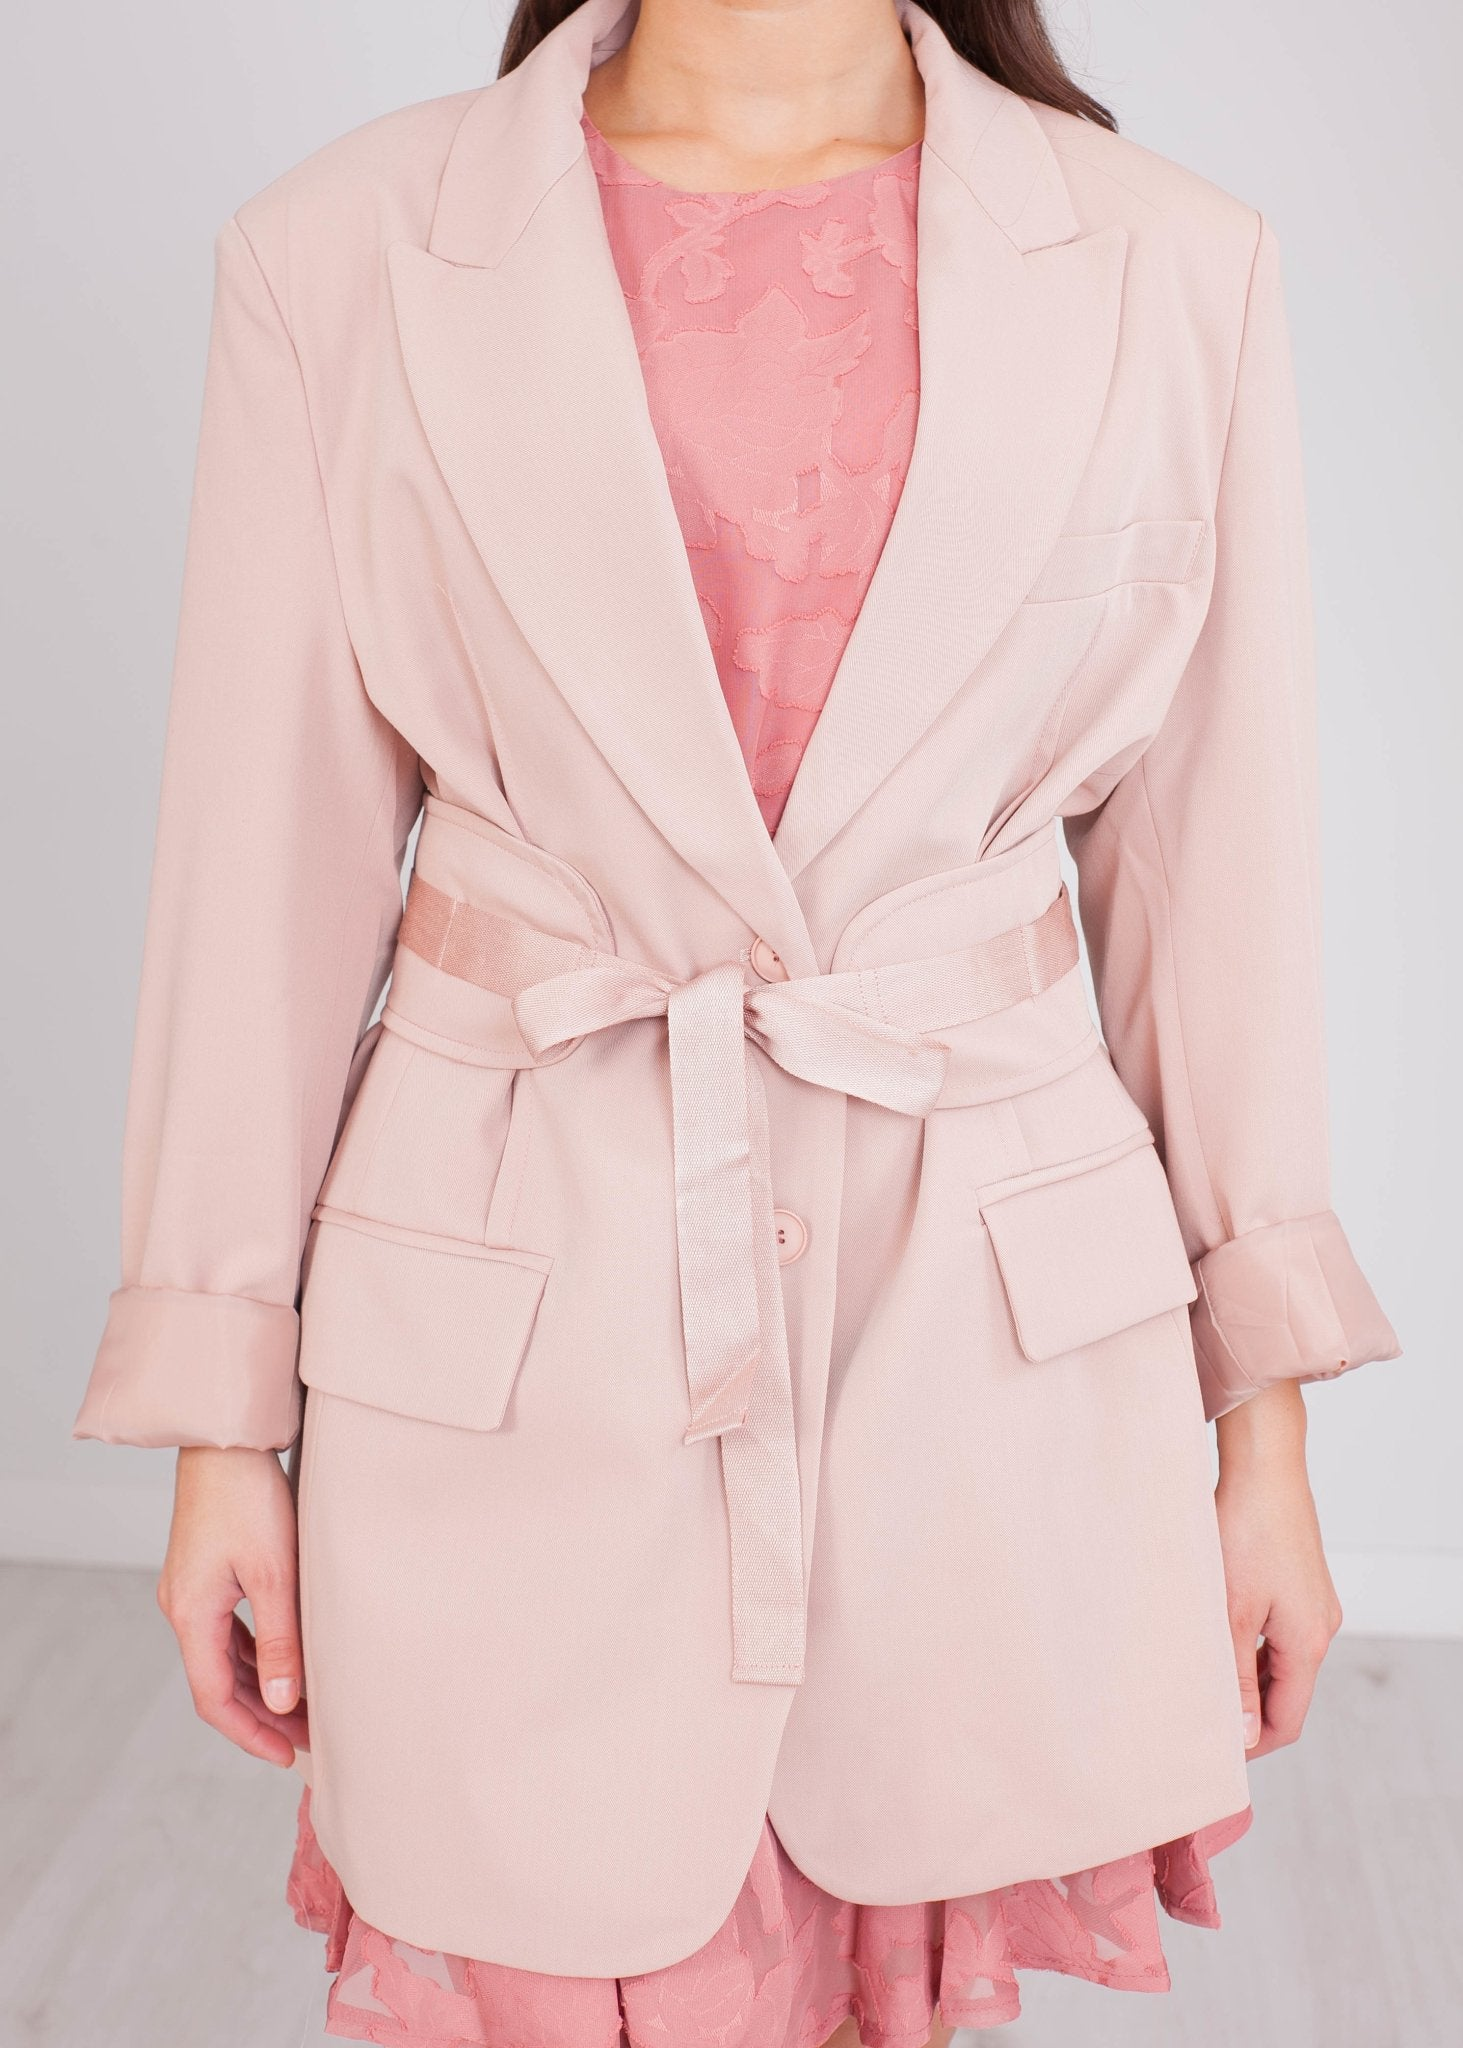 Arabella Pink Belt Blazer - The Walk in Wardrobe